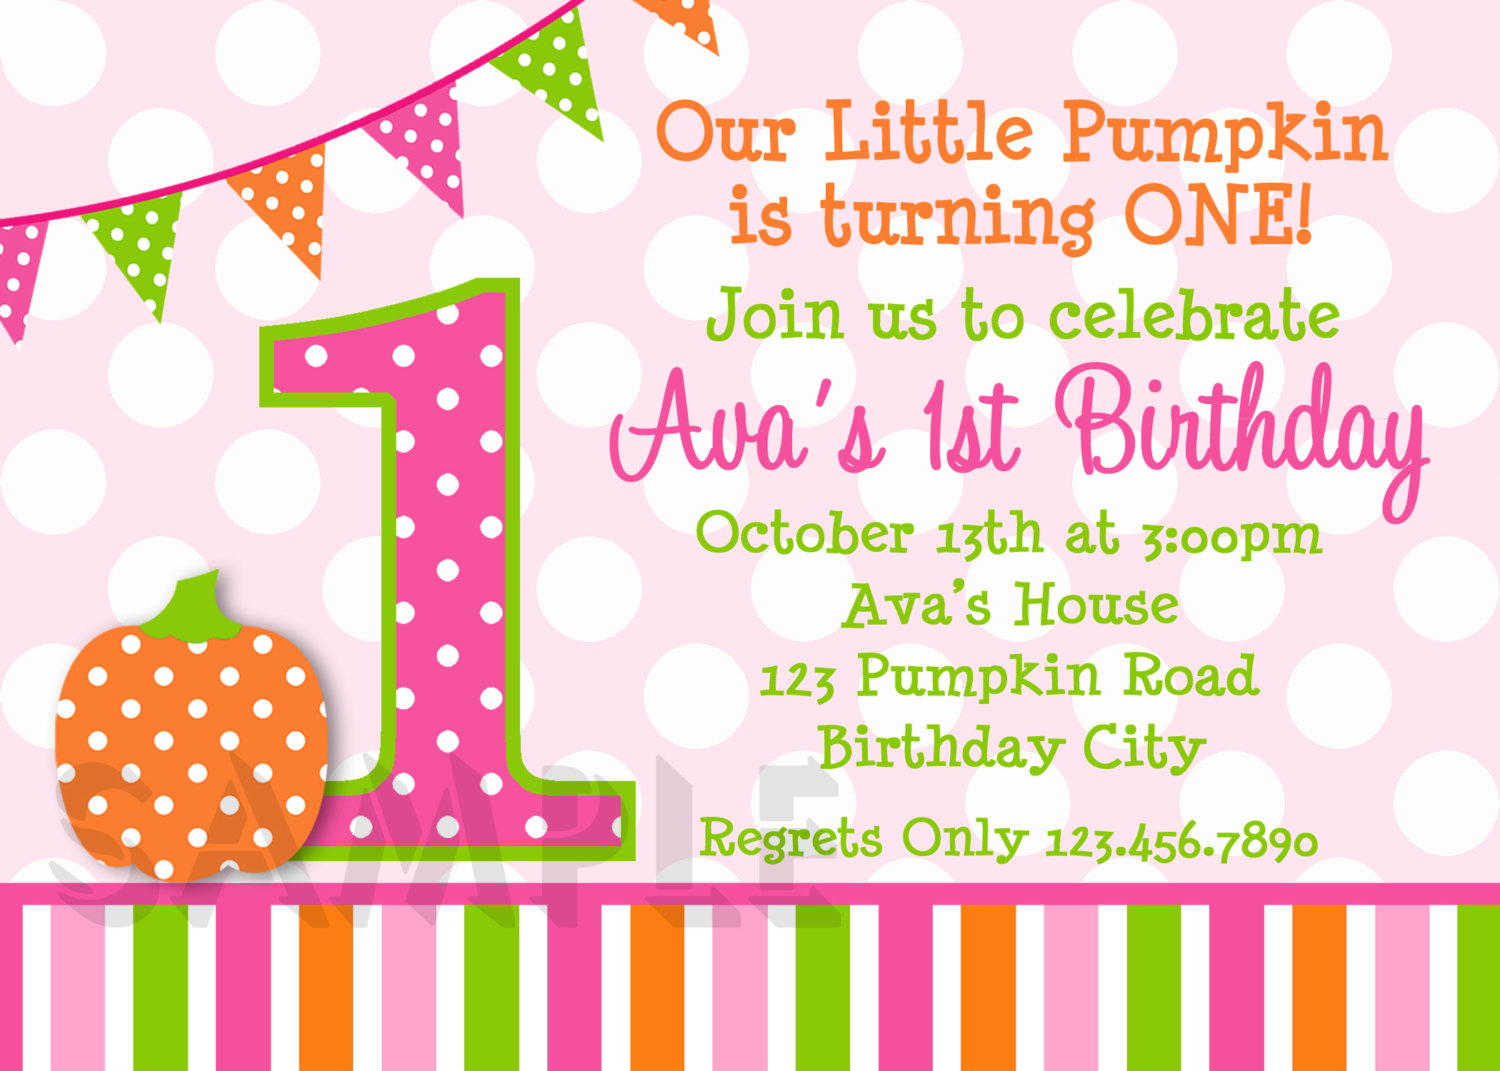 1st birthday pumpkin clipart banner black and white download 1000+ images about Maeve's Pumpkin 1st Birthday on Pinterest ... banner black and white download